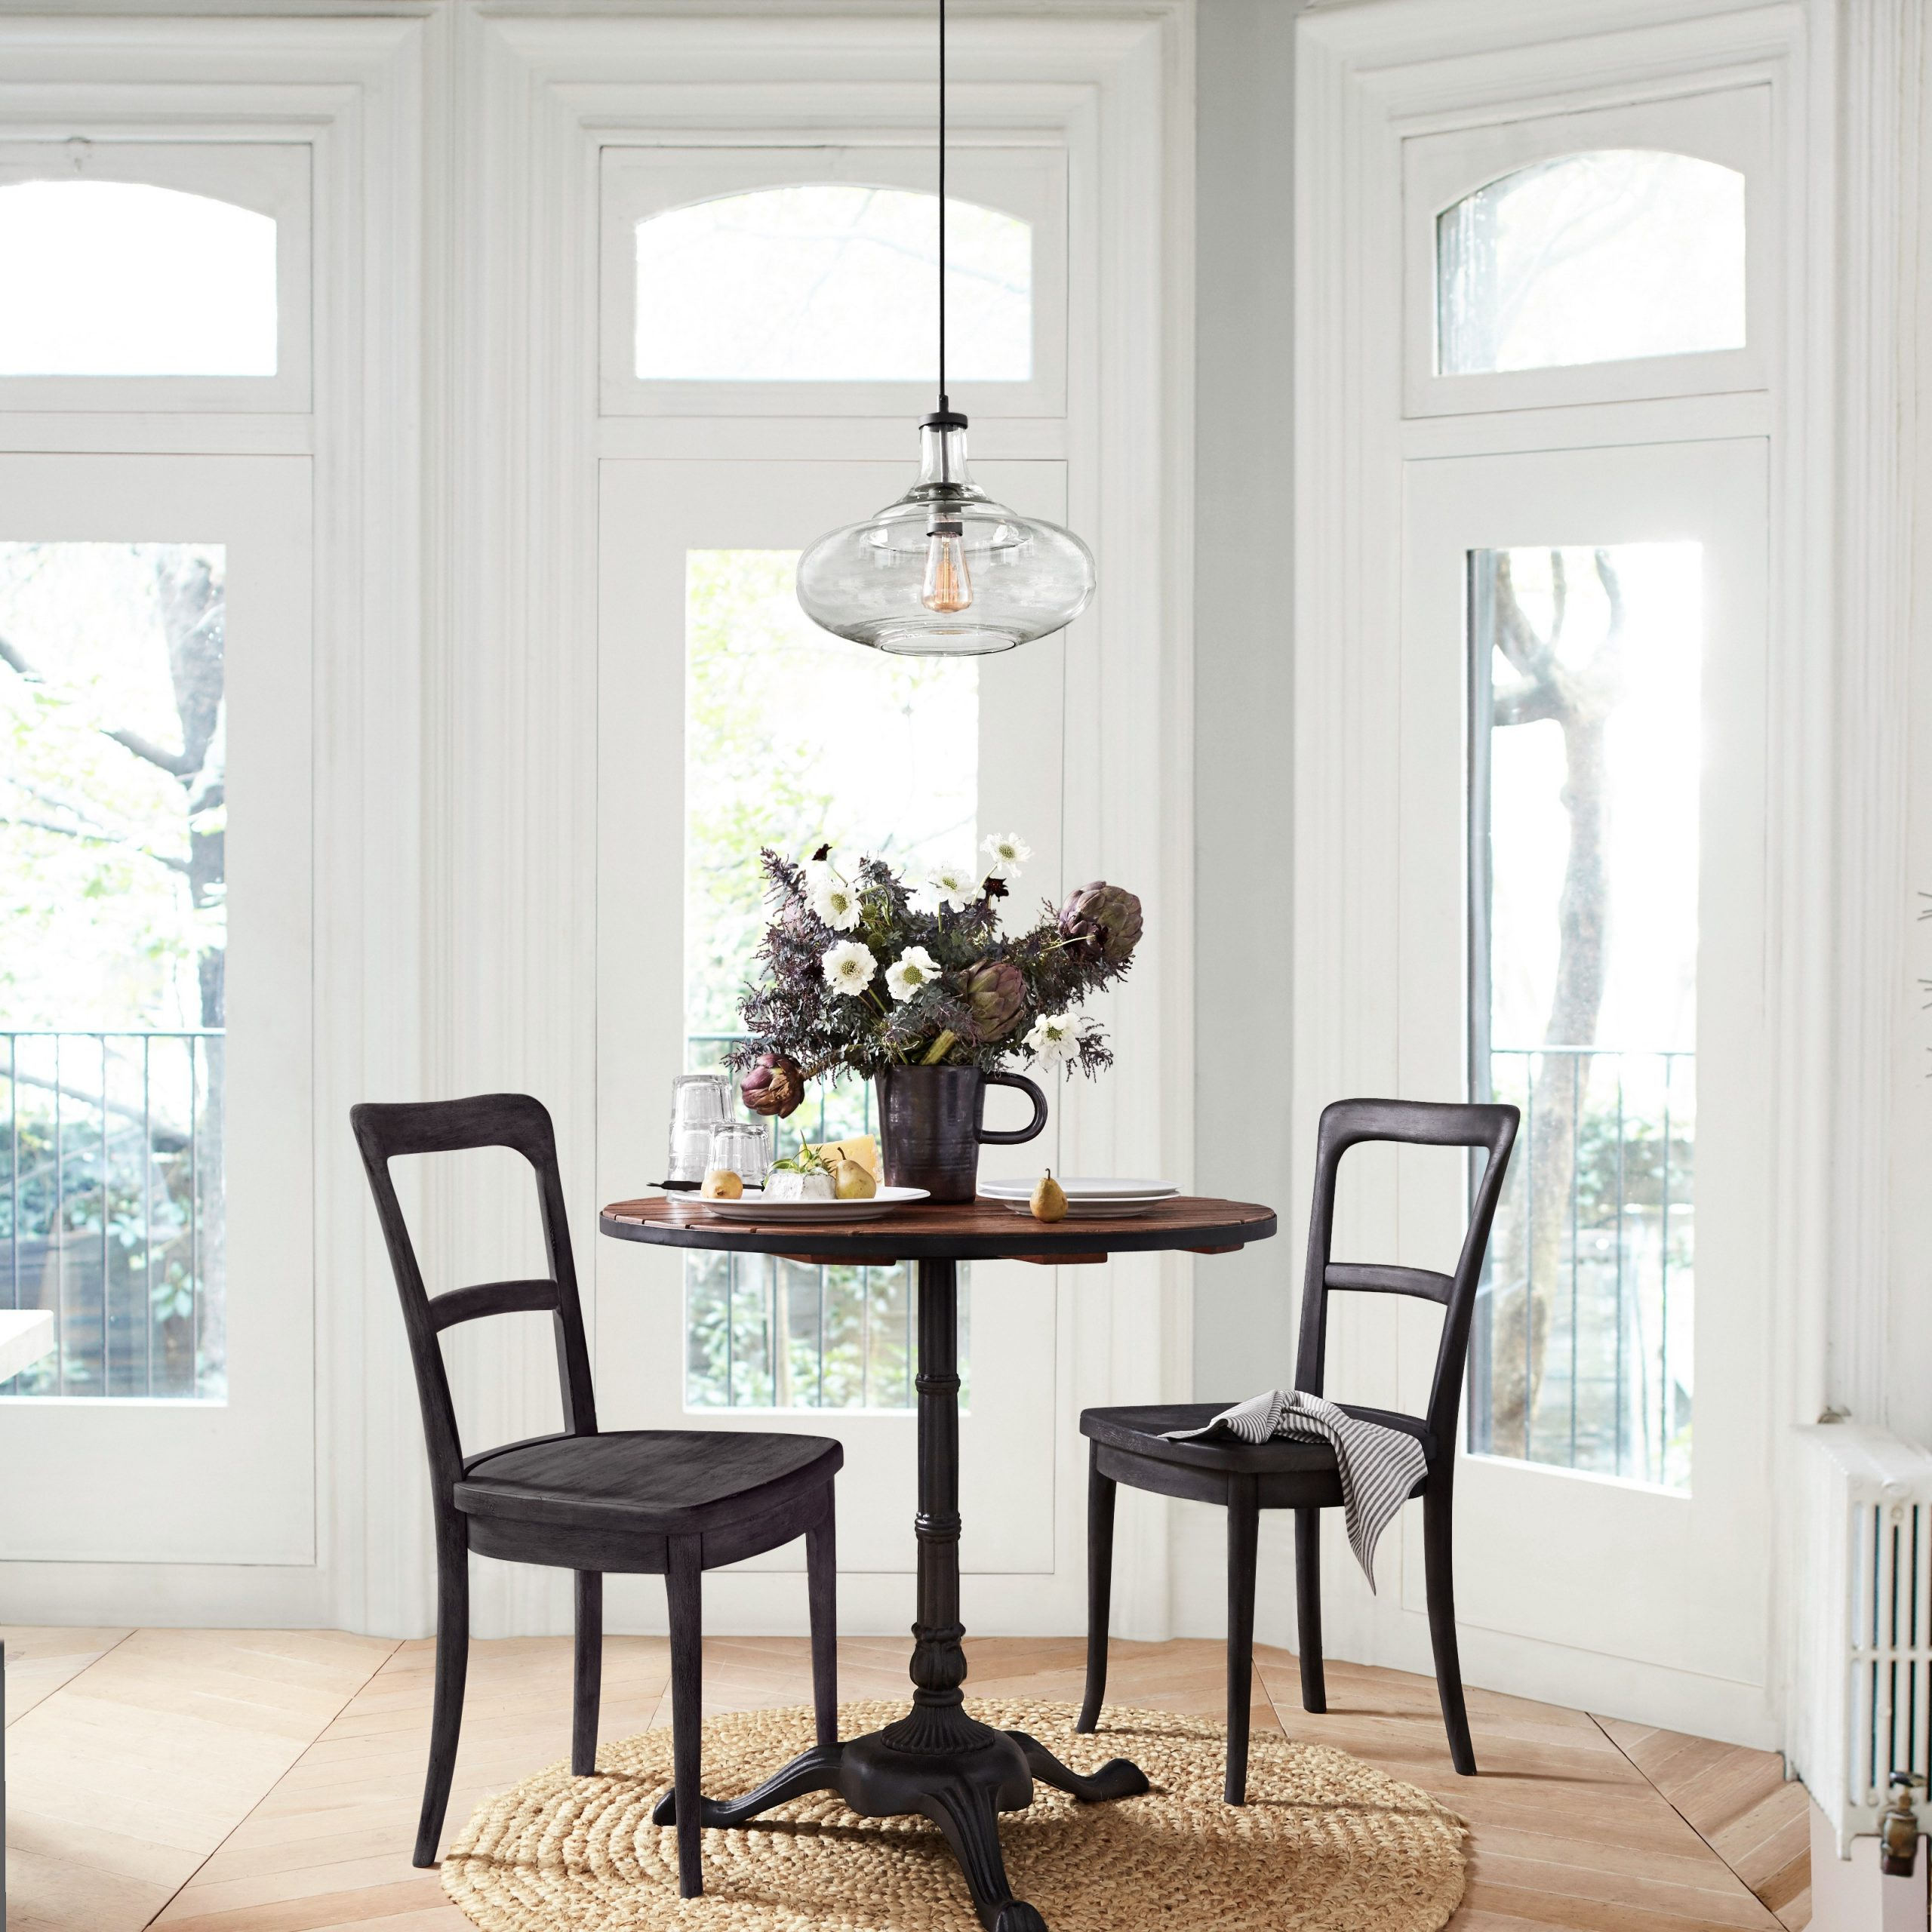 Rae Round Marble Bistro Tables for Most Up-to-Date Pottery Barn's New Small-Space Line